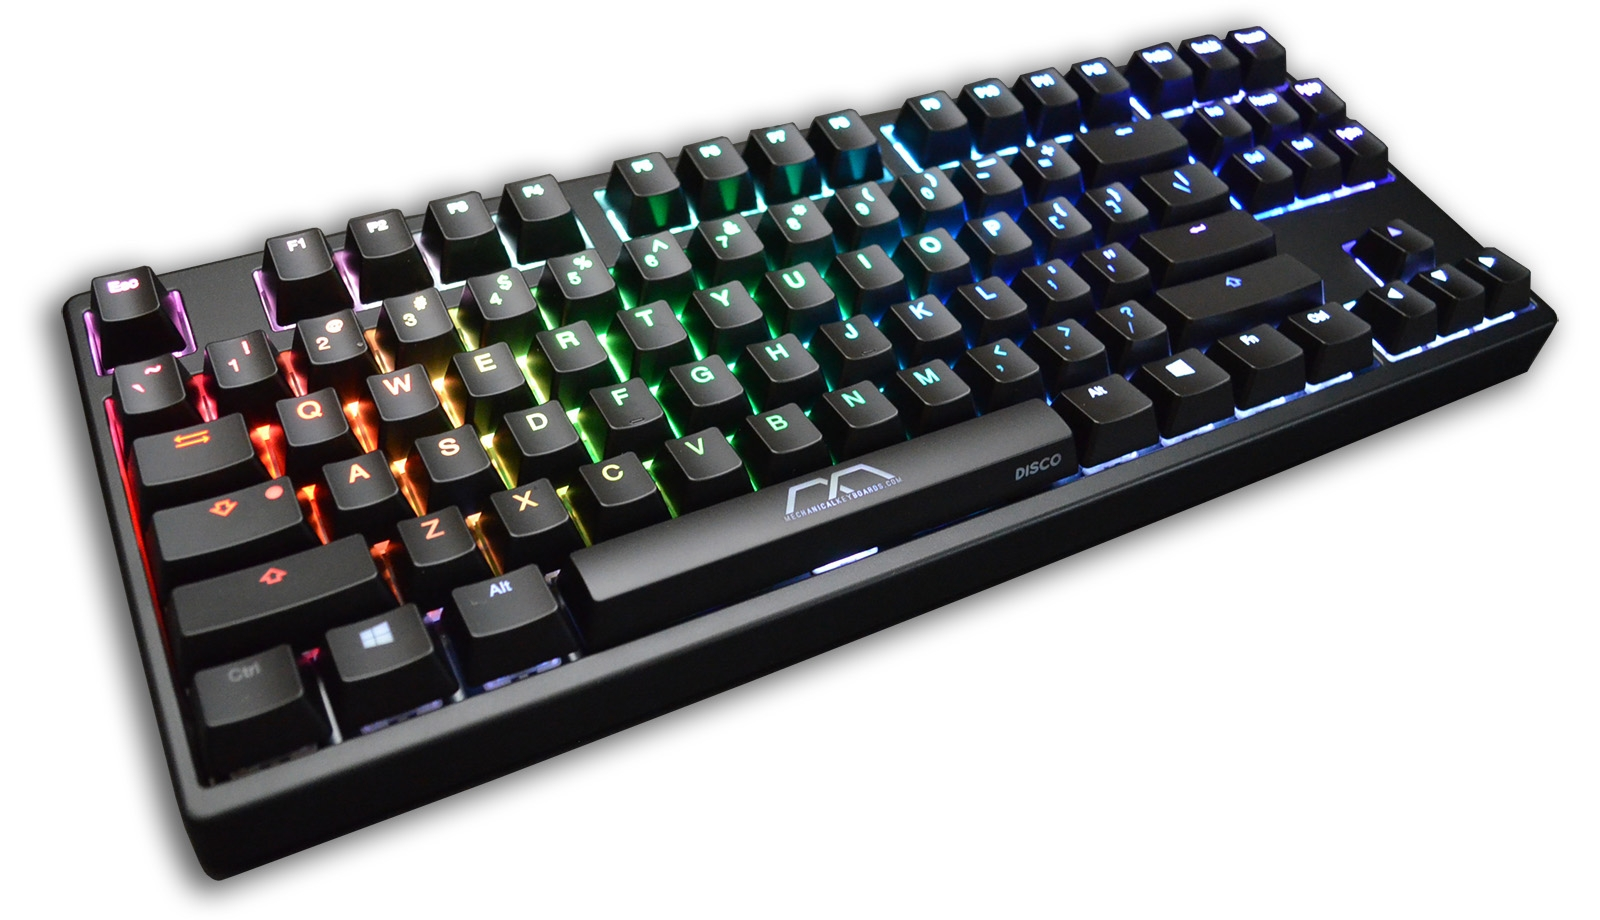 6f3f6ed77b4 MK Disco Black ABS Keycaps RGB LED TKL Double Shot Mechanical Keyboard (KBT  Blue)